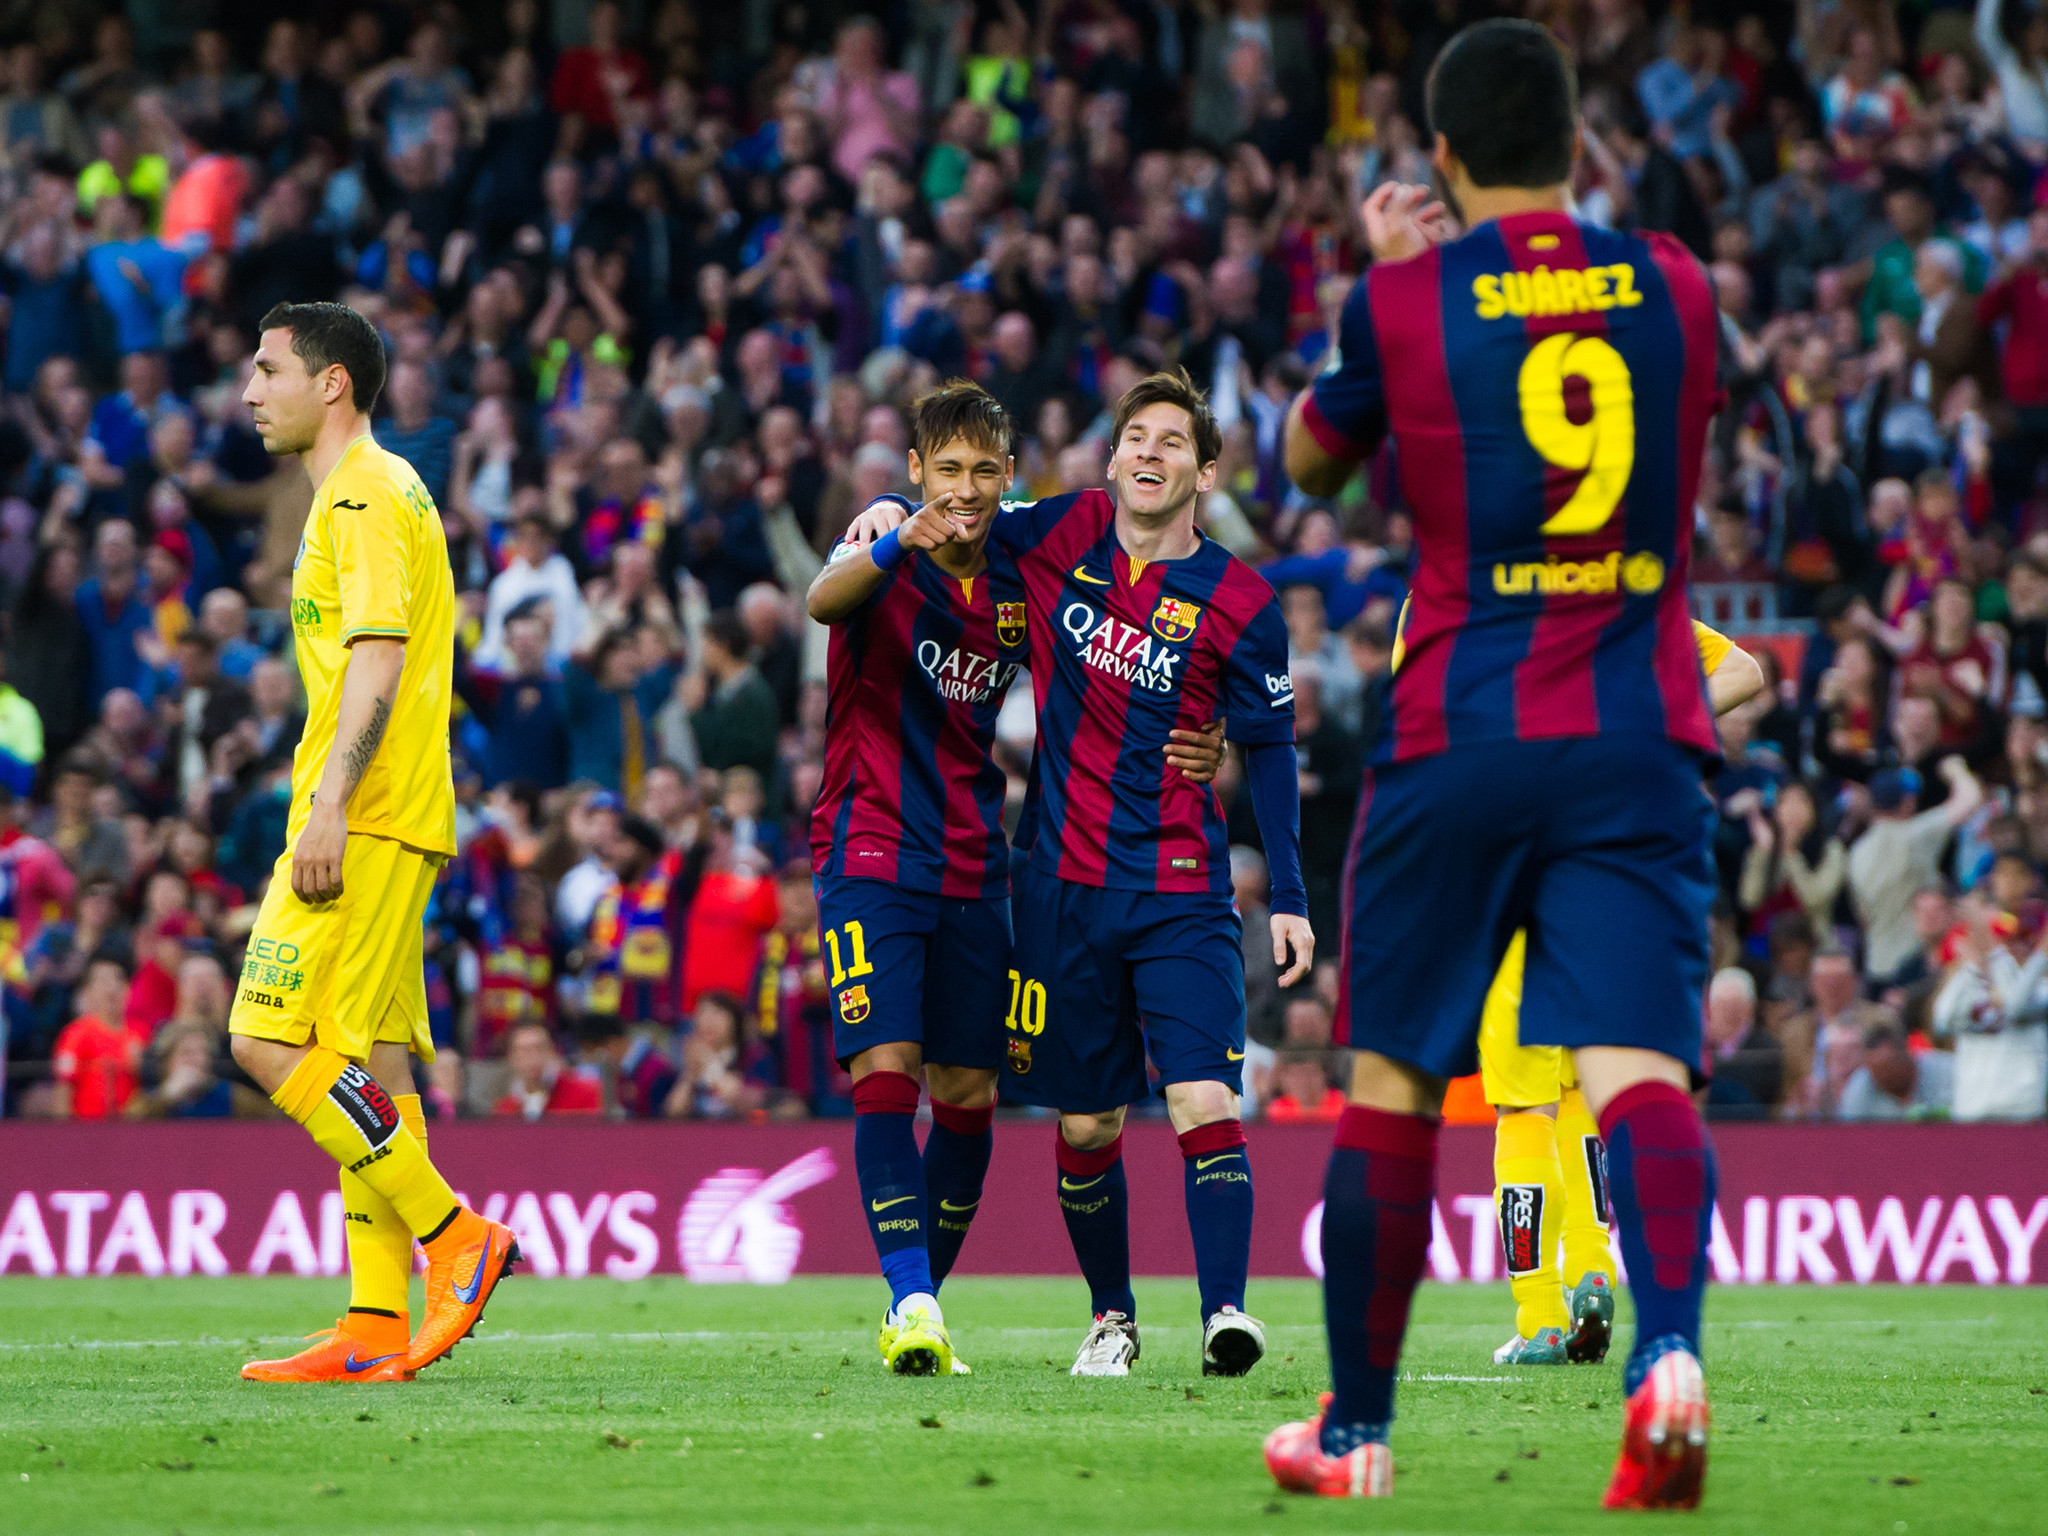 Lionel Messi, Neymar and Luis Suarez have now scored 102 goals between them  for Barcelona this season   The Independent